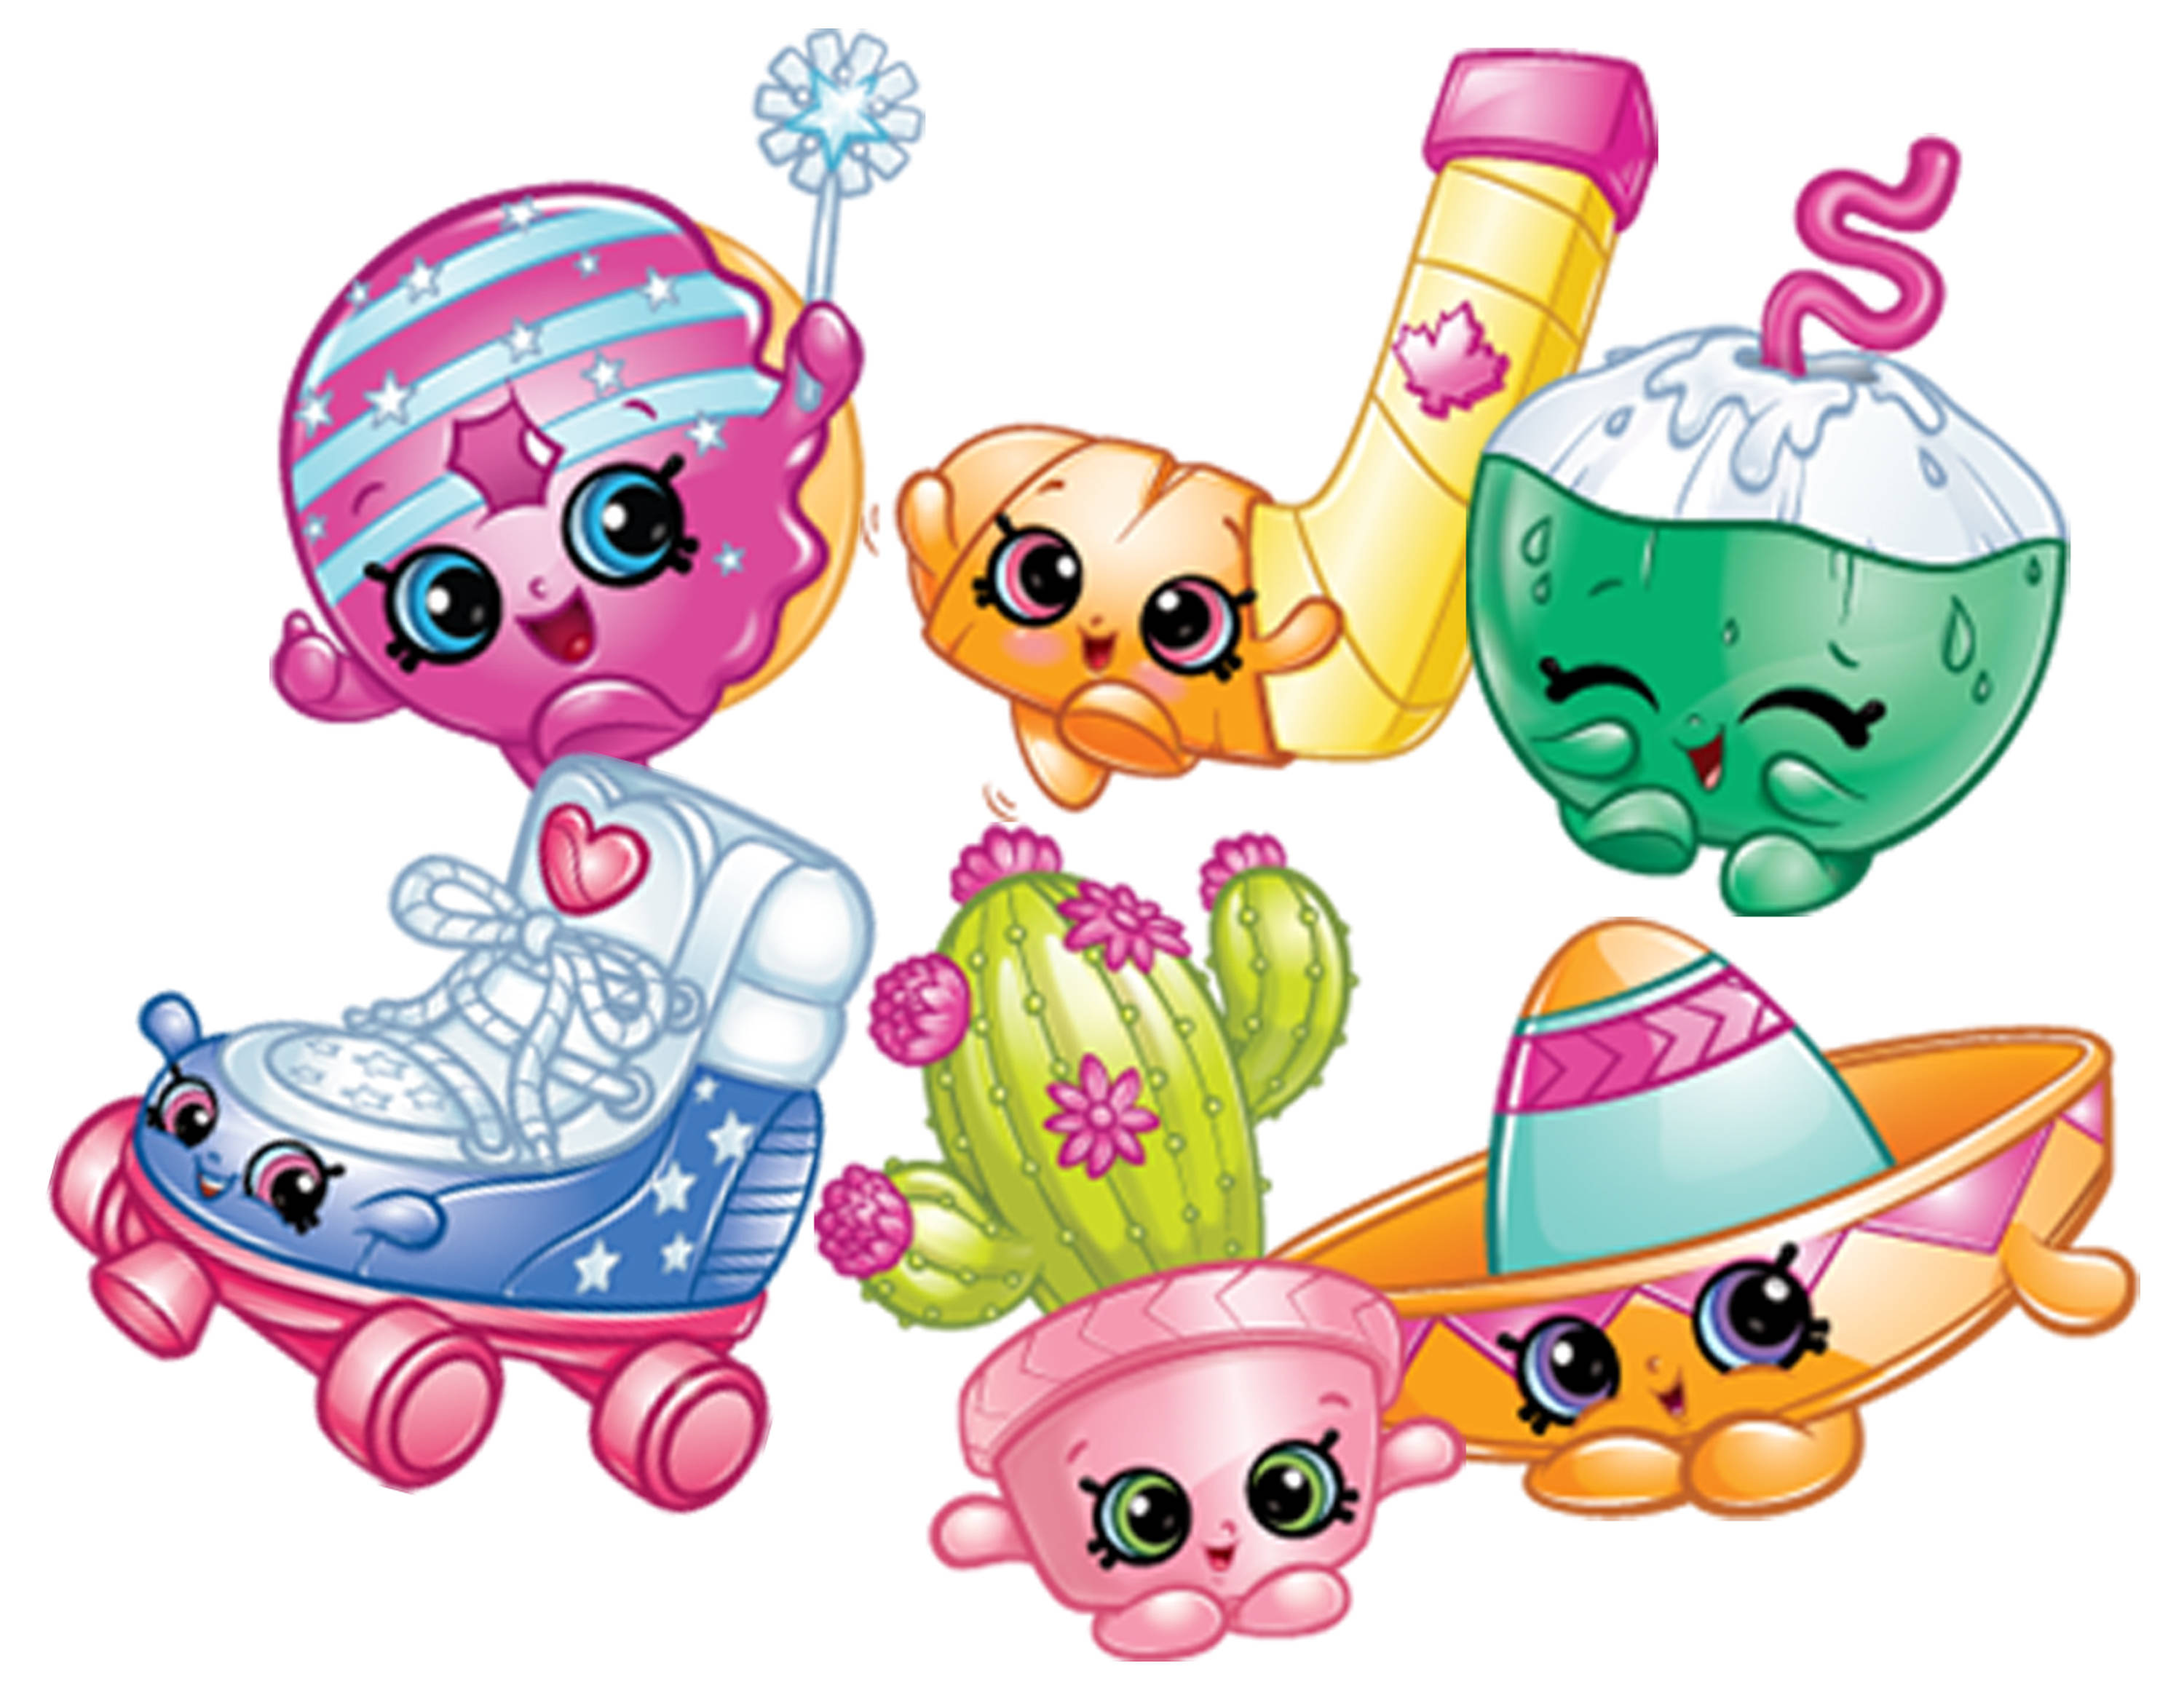 3000x2322 Shopkins Shoppies World Vacation Themed Dolls